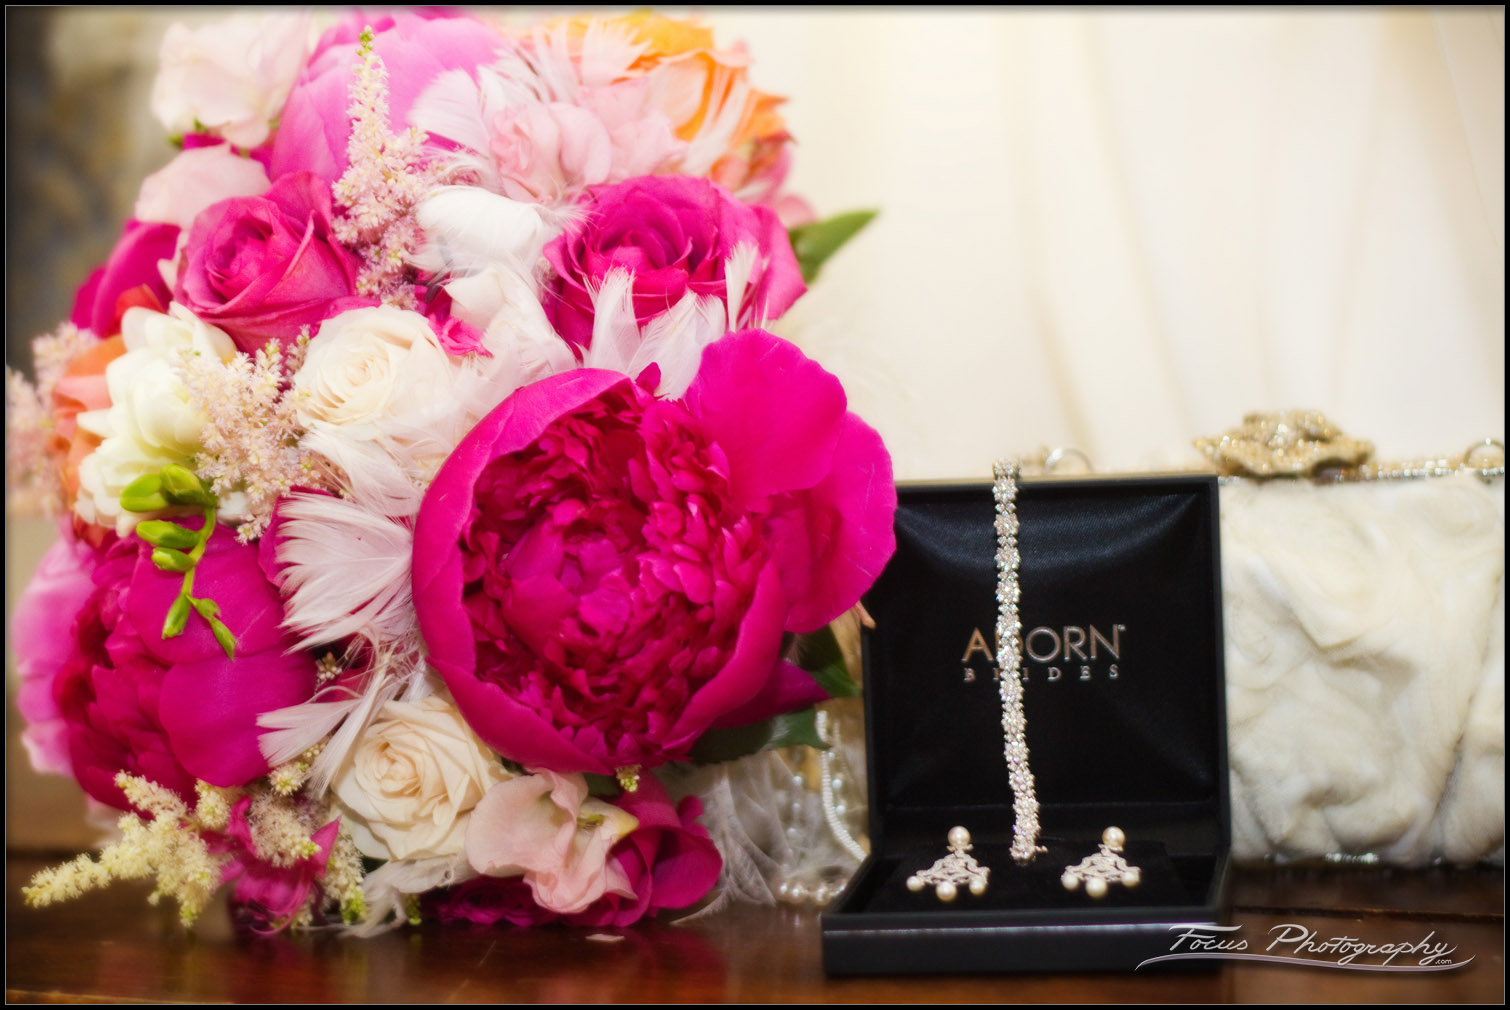 The bride's bouquet and her jewelry